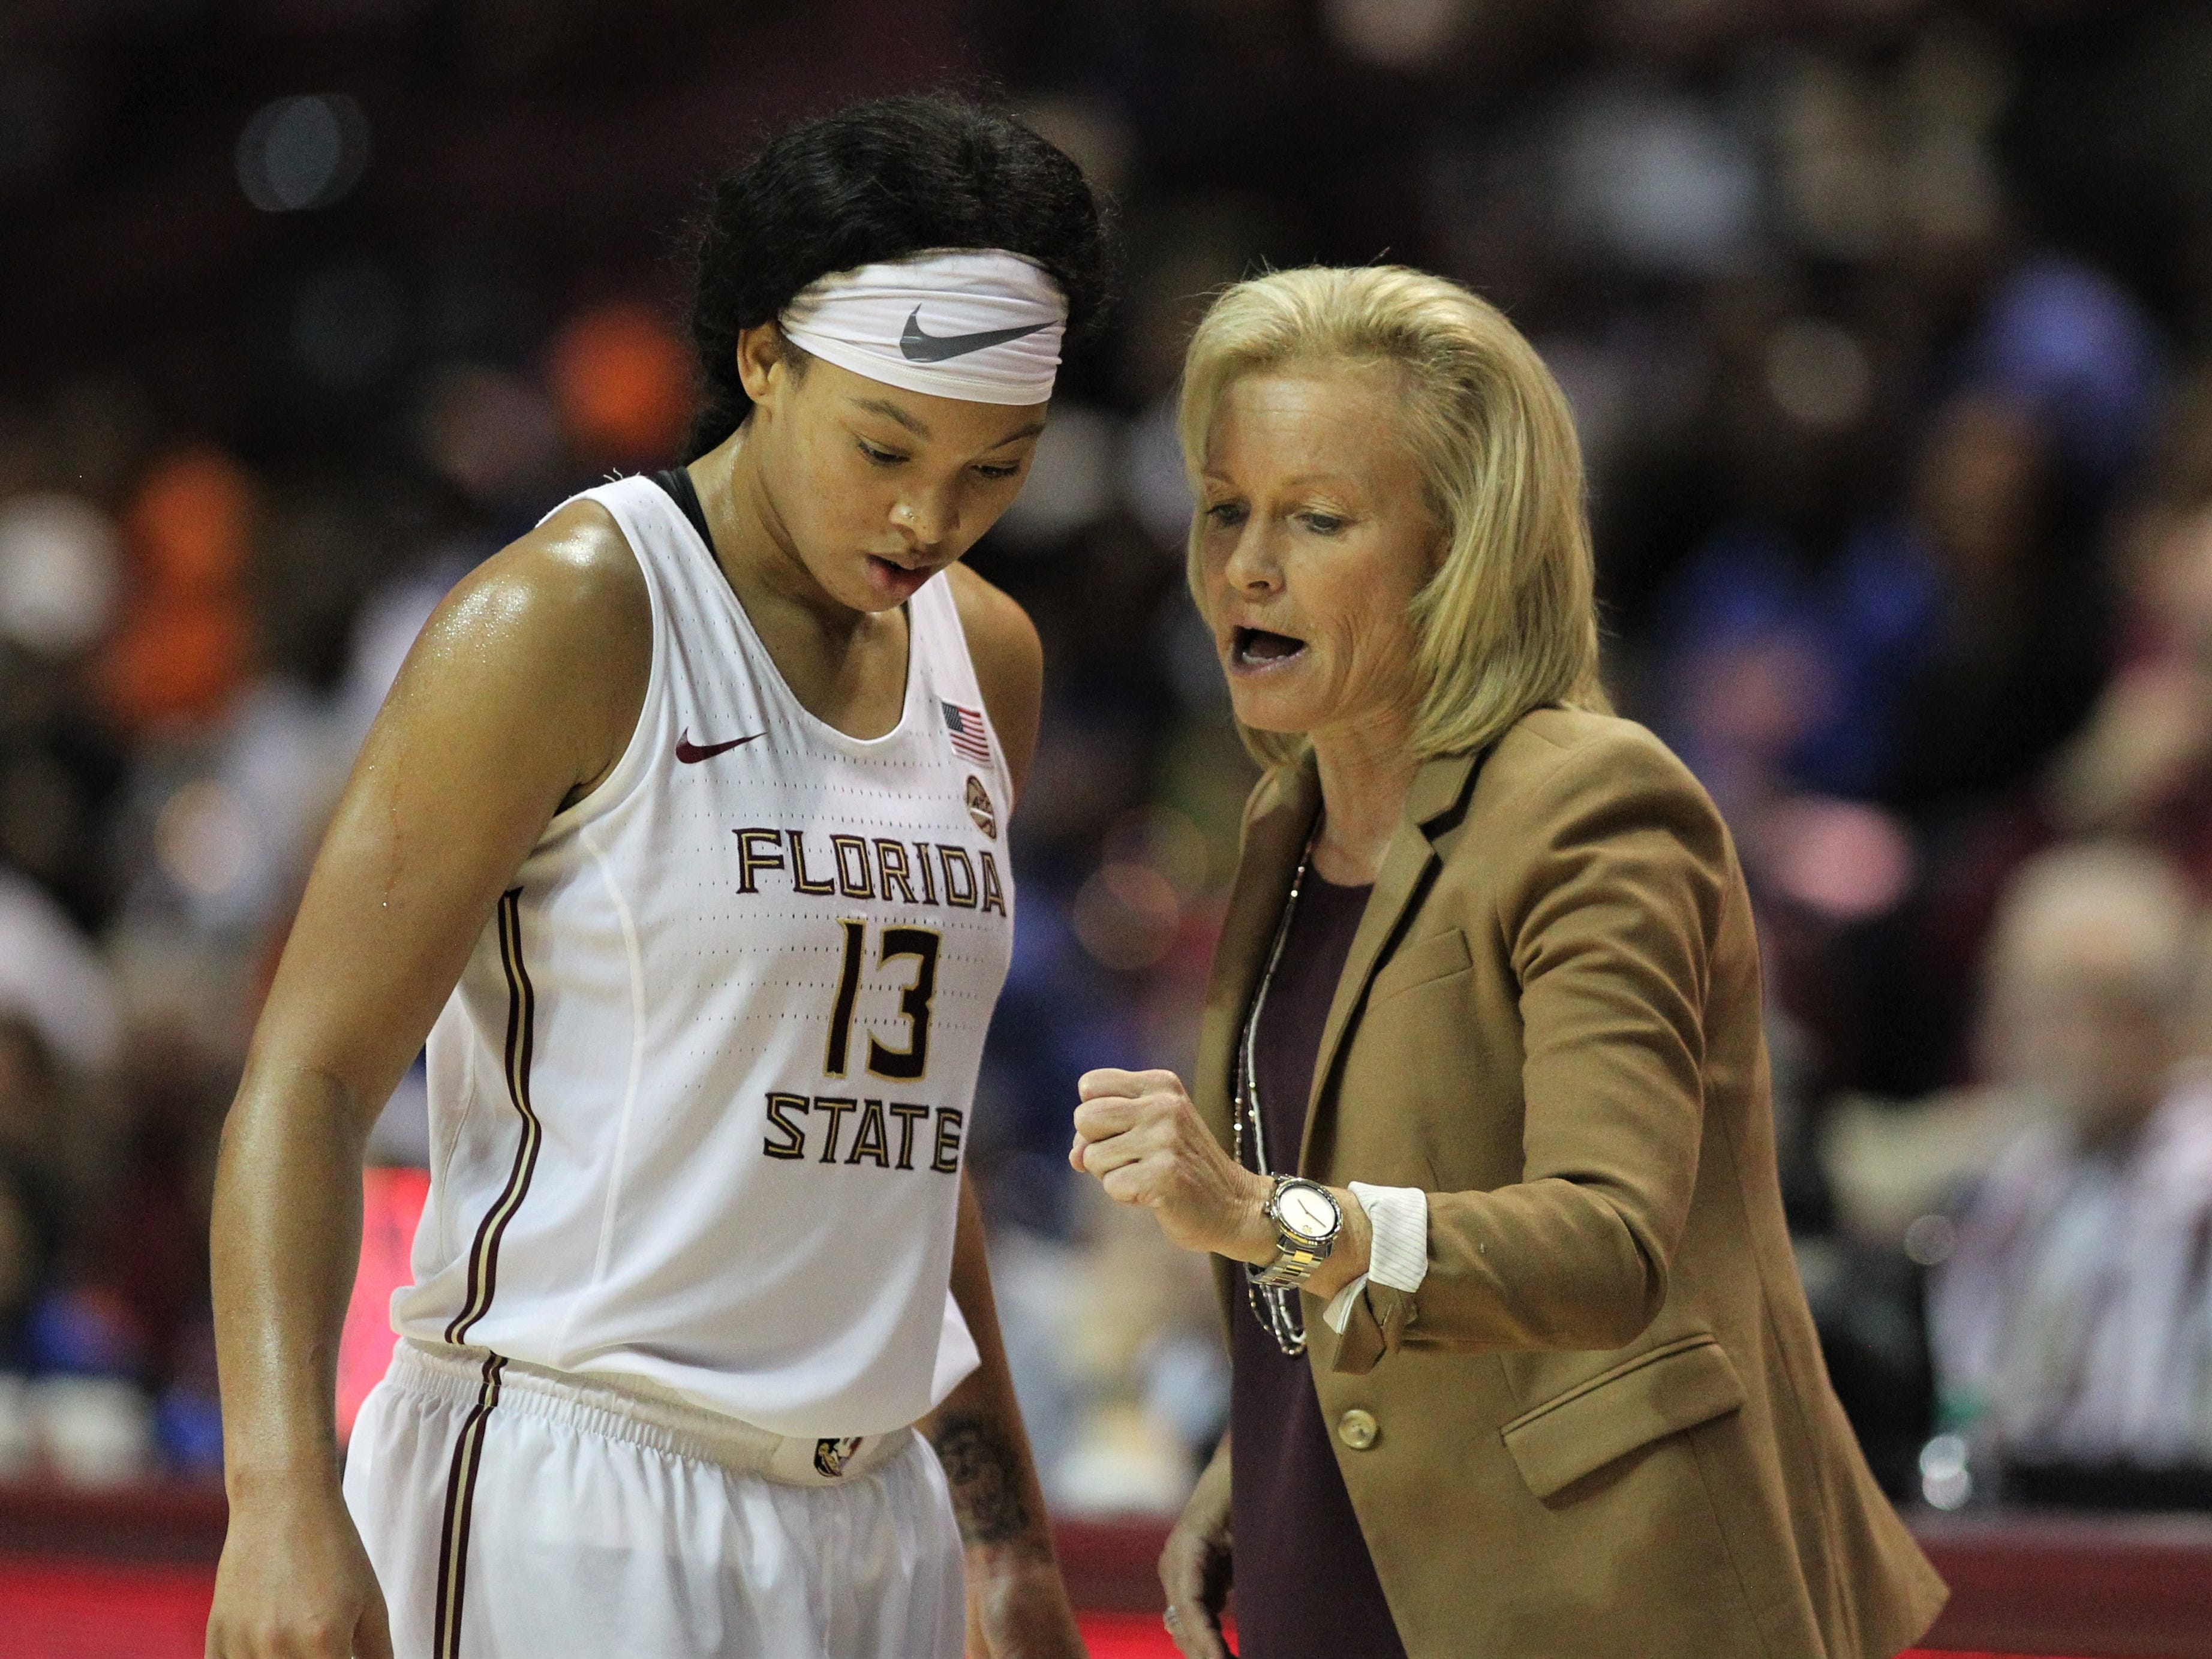 Florida State women's basketball coach Sue Semrau talks to Nausia Woolfolk during a game at the Tucker Civic Center.